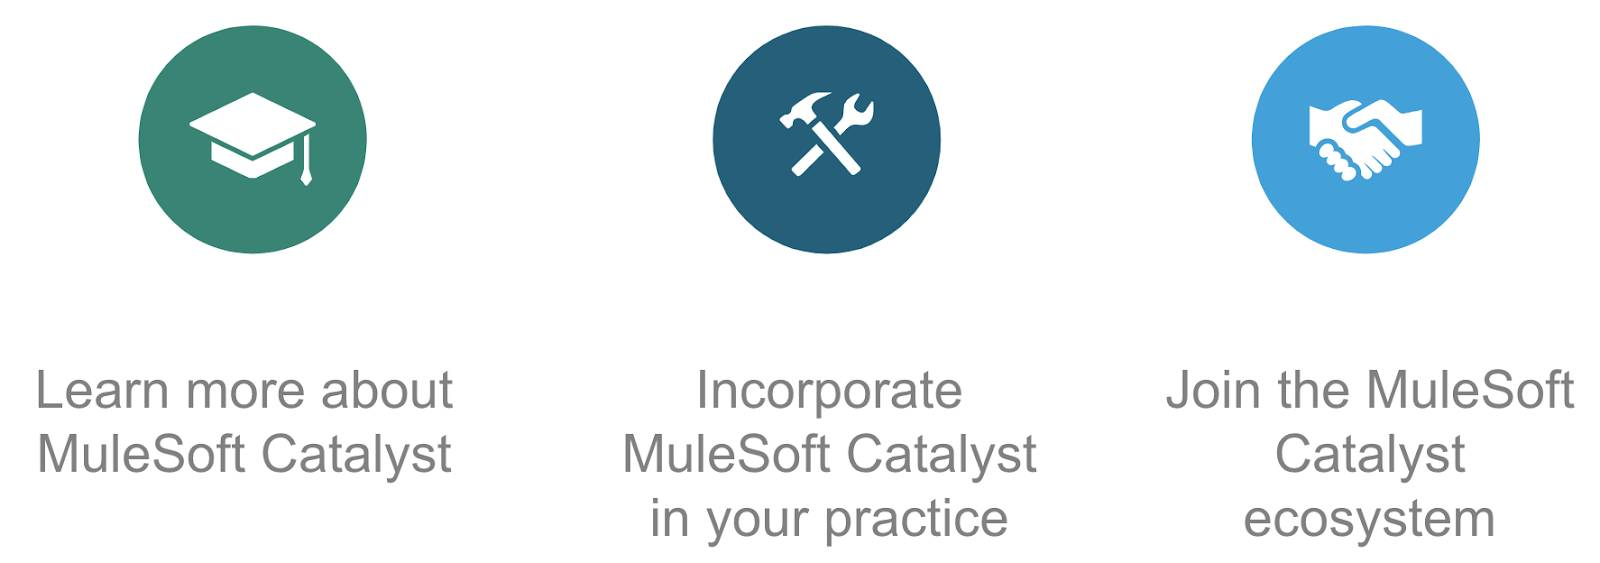 Your next steps include learning more about MuleSoft Catalyst, incorporating MuleSoft Catalyst in your practice, and joining the MuleSoft Catalyst ecosystem.